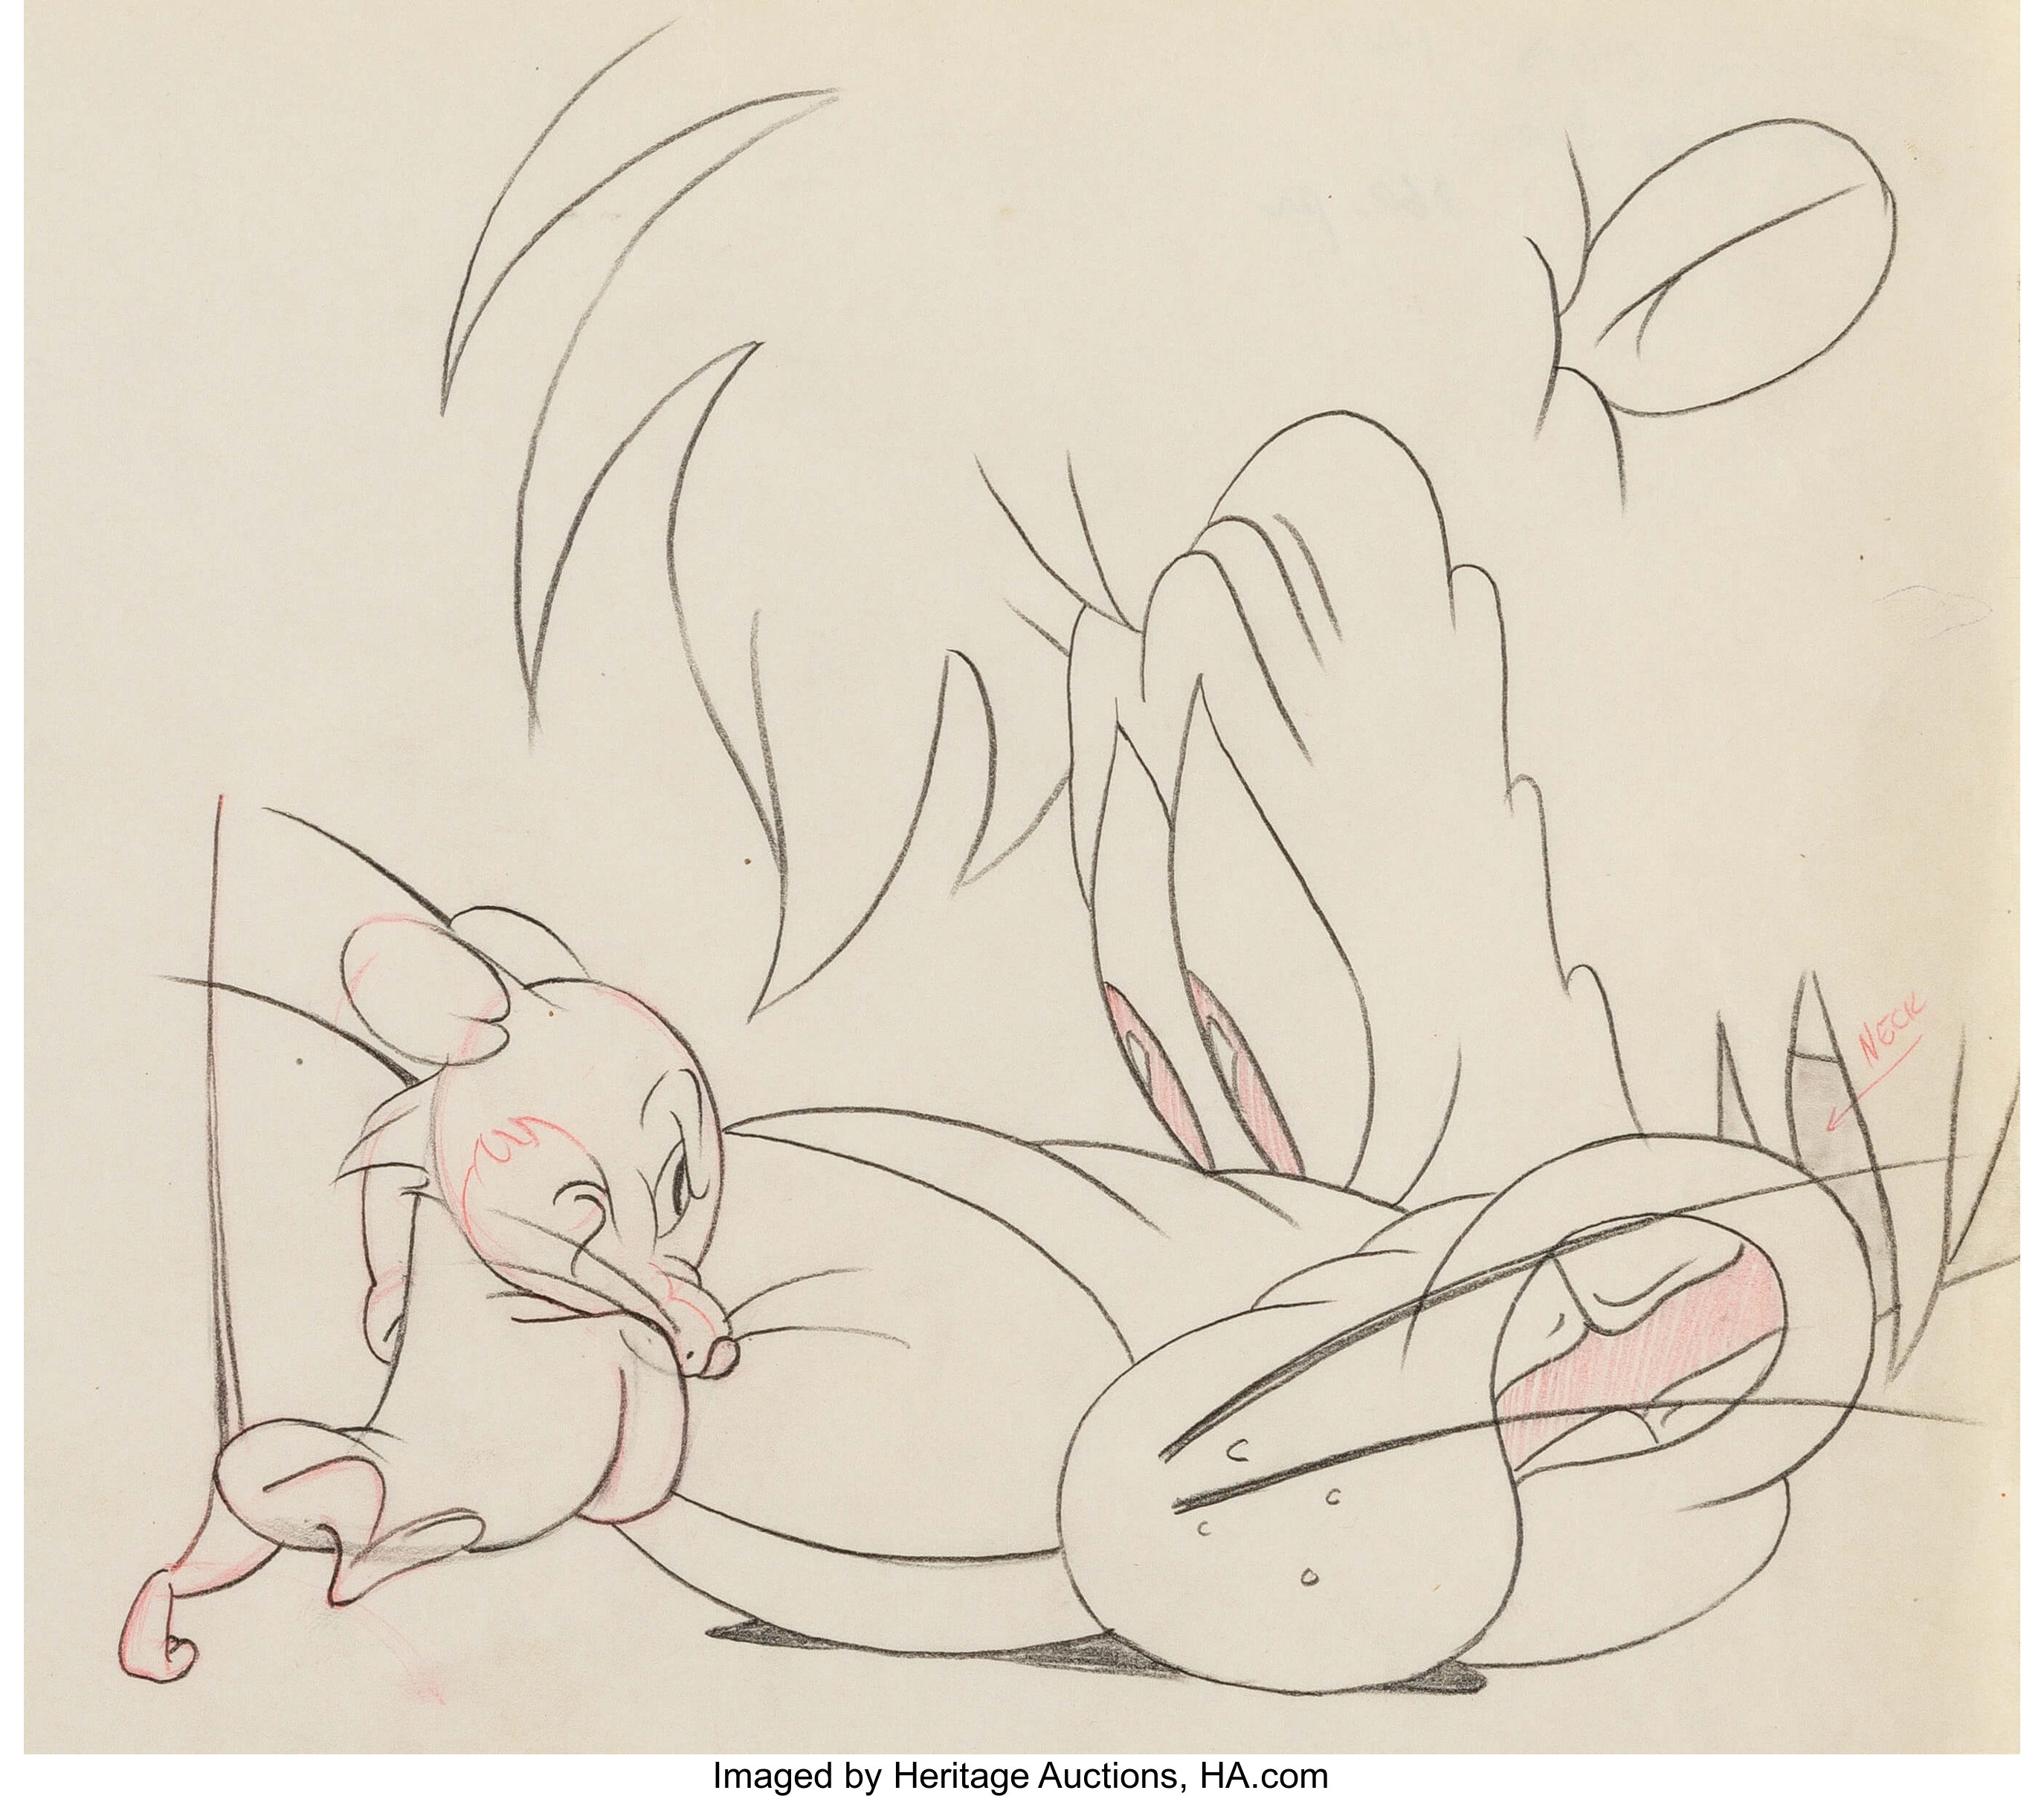 Slap Happy Lion Animation Drawing Mgm 1947 Animation Art Lot 11227 Heritage Auctions